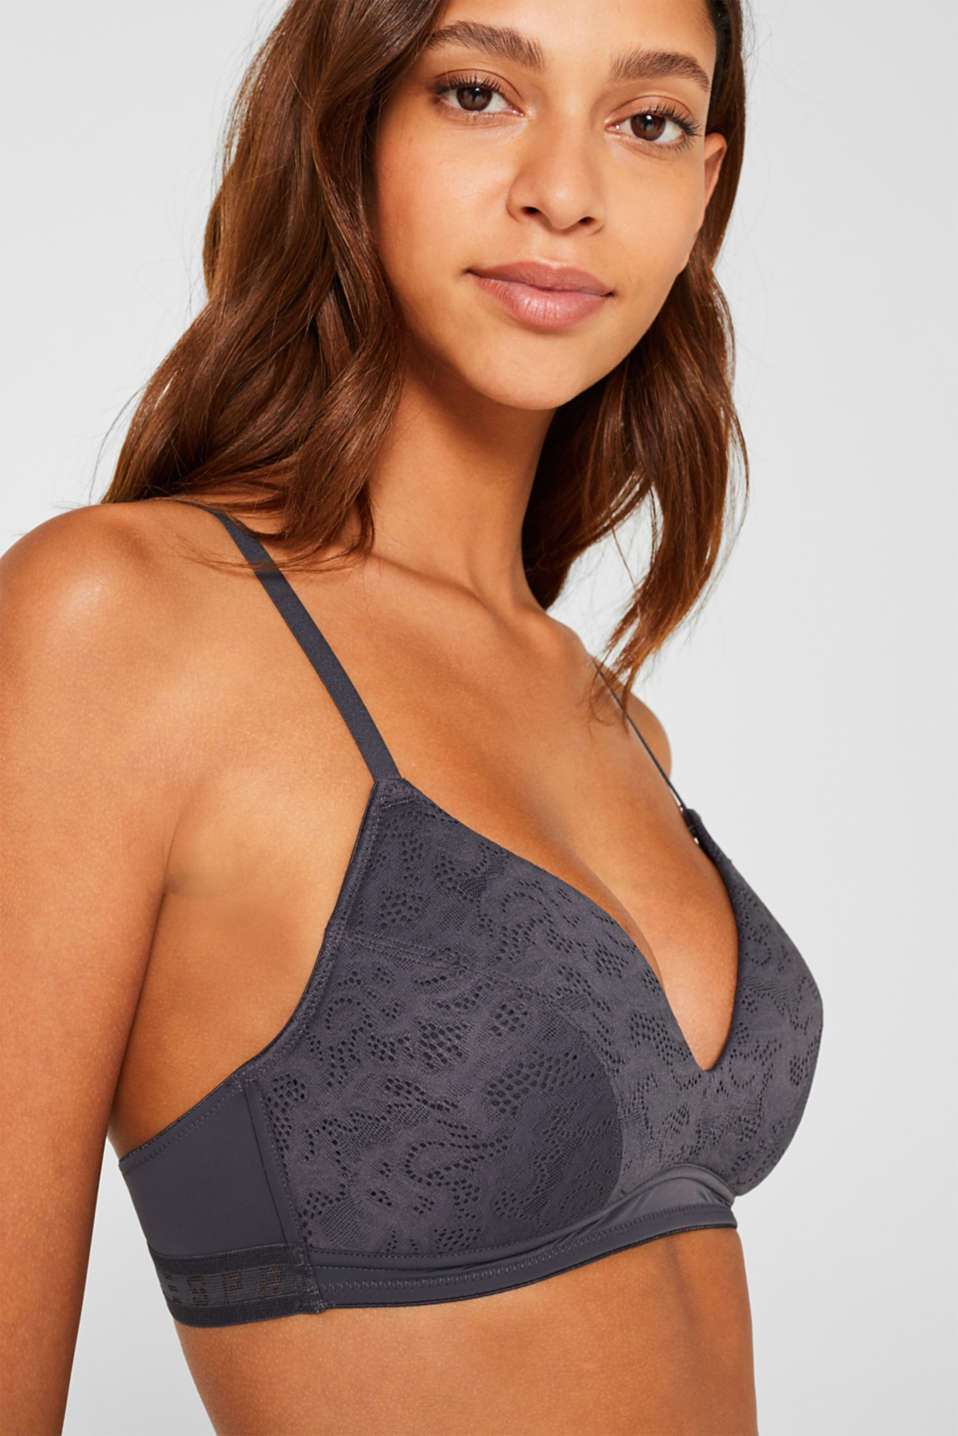 Padded non-wired bra with an openwork pattern, ANTHRACITE, detail image number 2